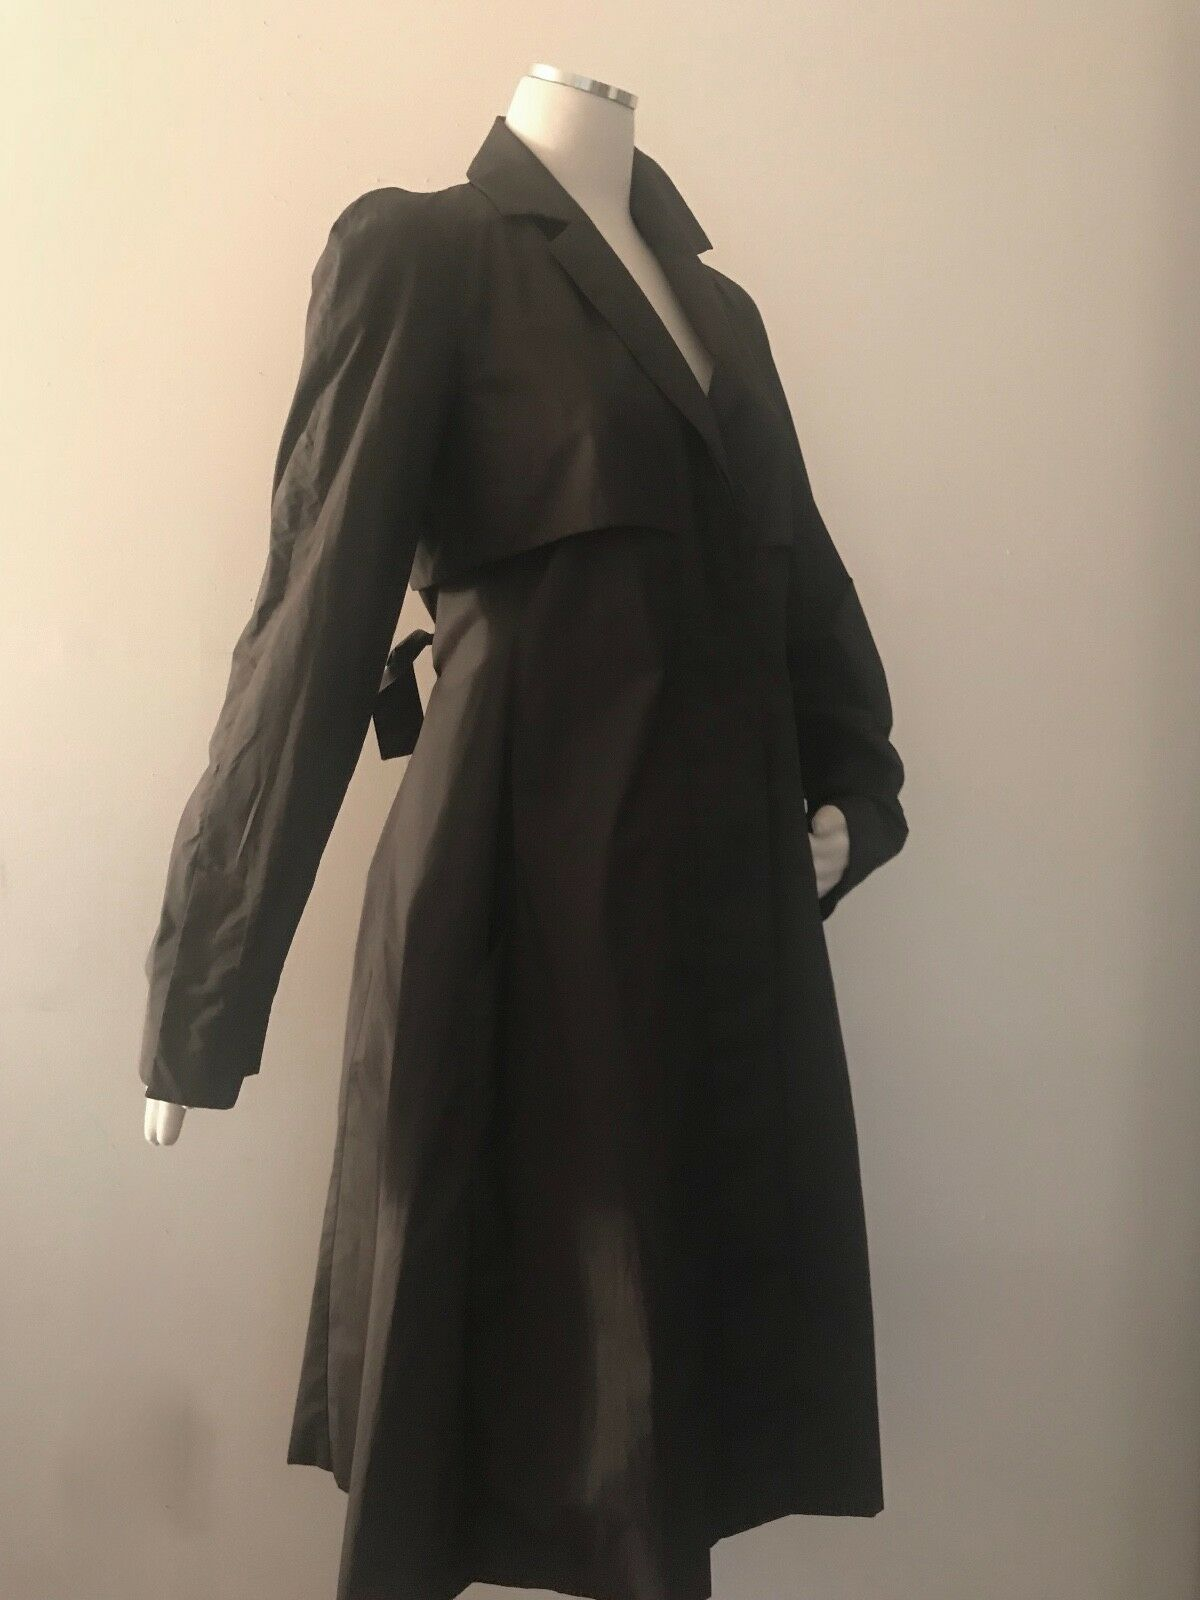 Narciso Narciso Narciso Rodriguez Women's brown trench coat Midi size 6 8 S  42  Fit&Flare 72b678